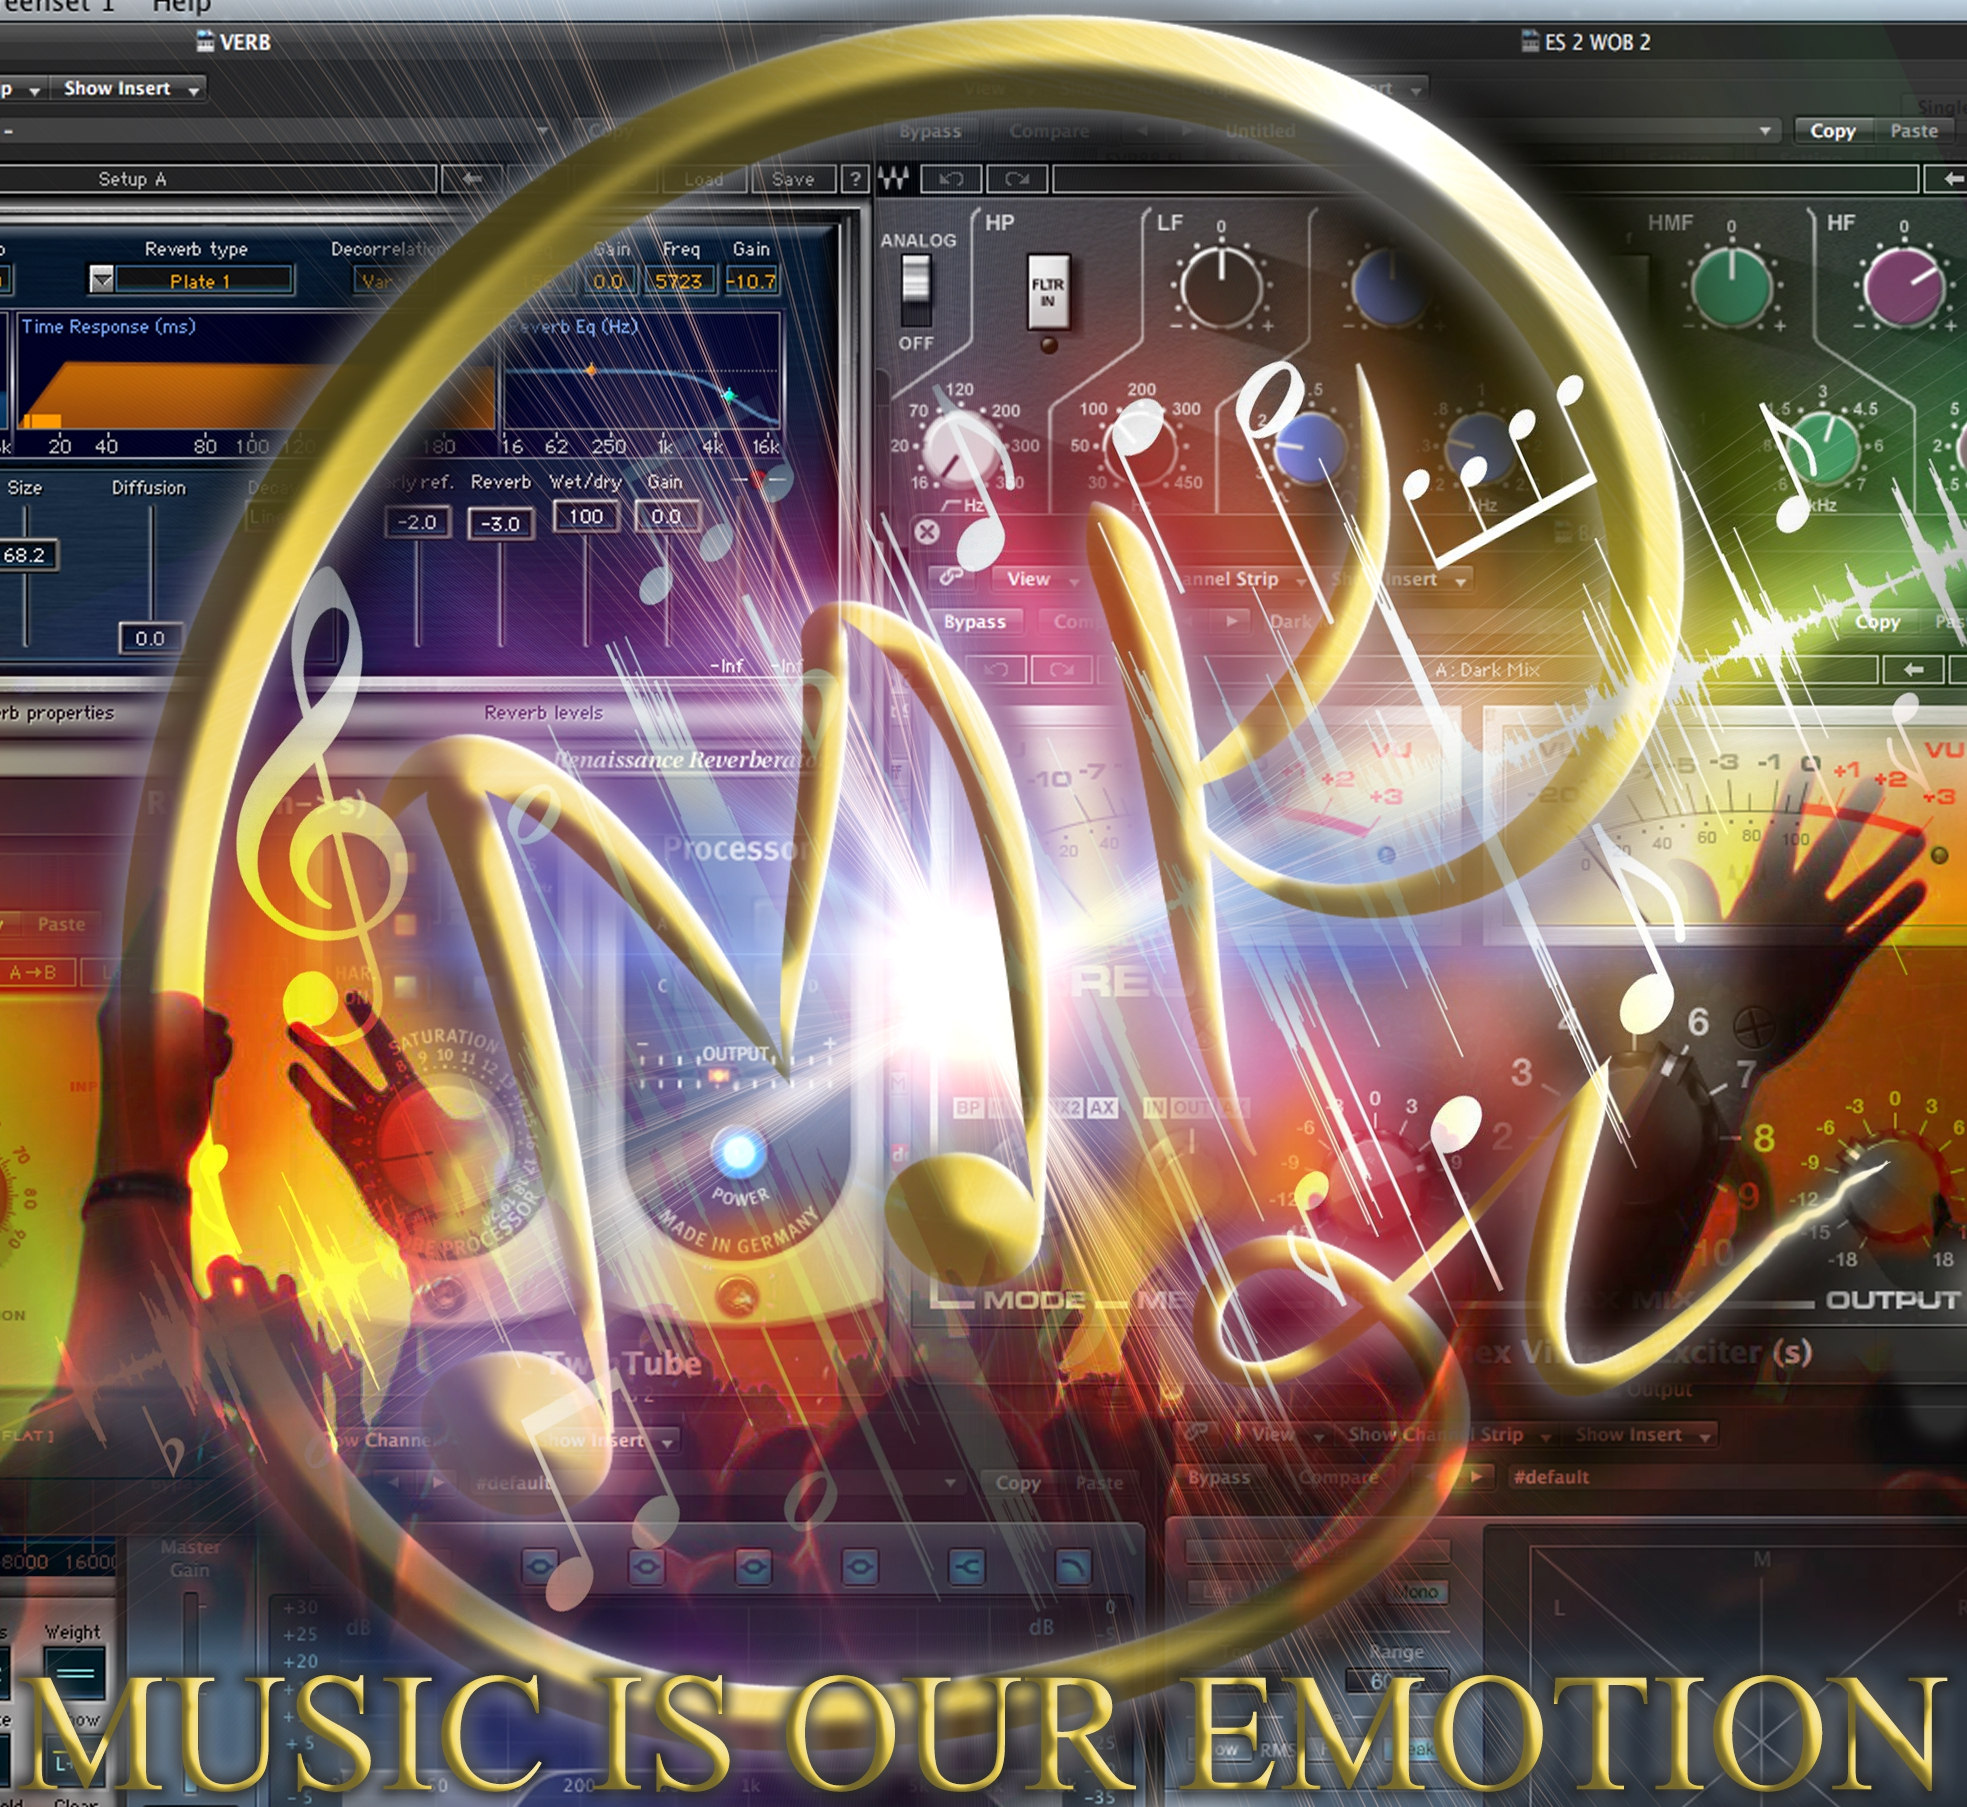 I will make cool n epic beats, instrumentals, remixes, music for you